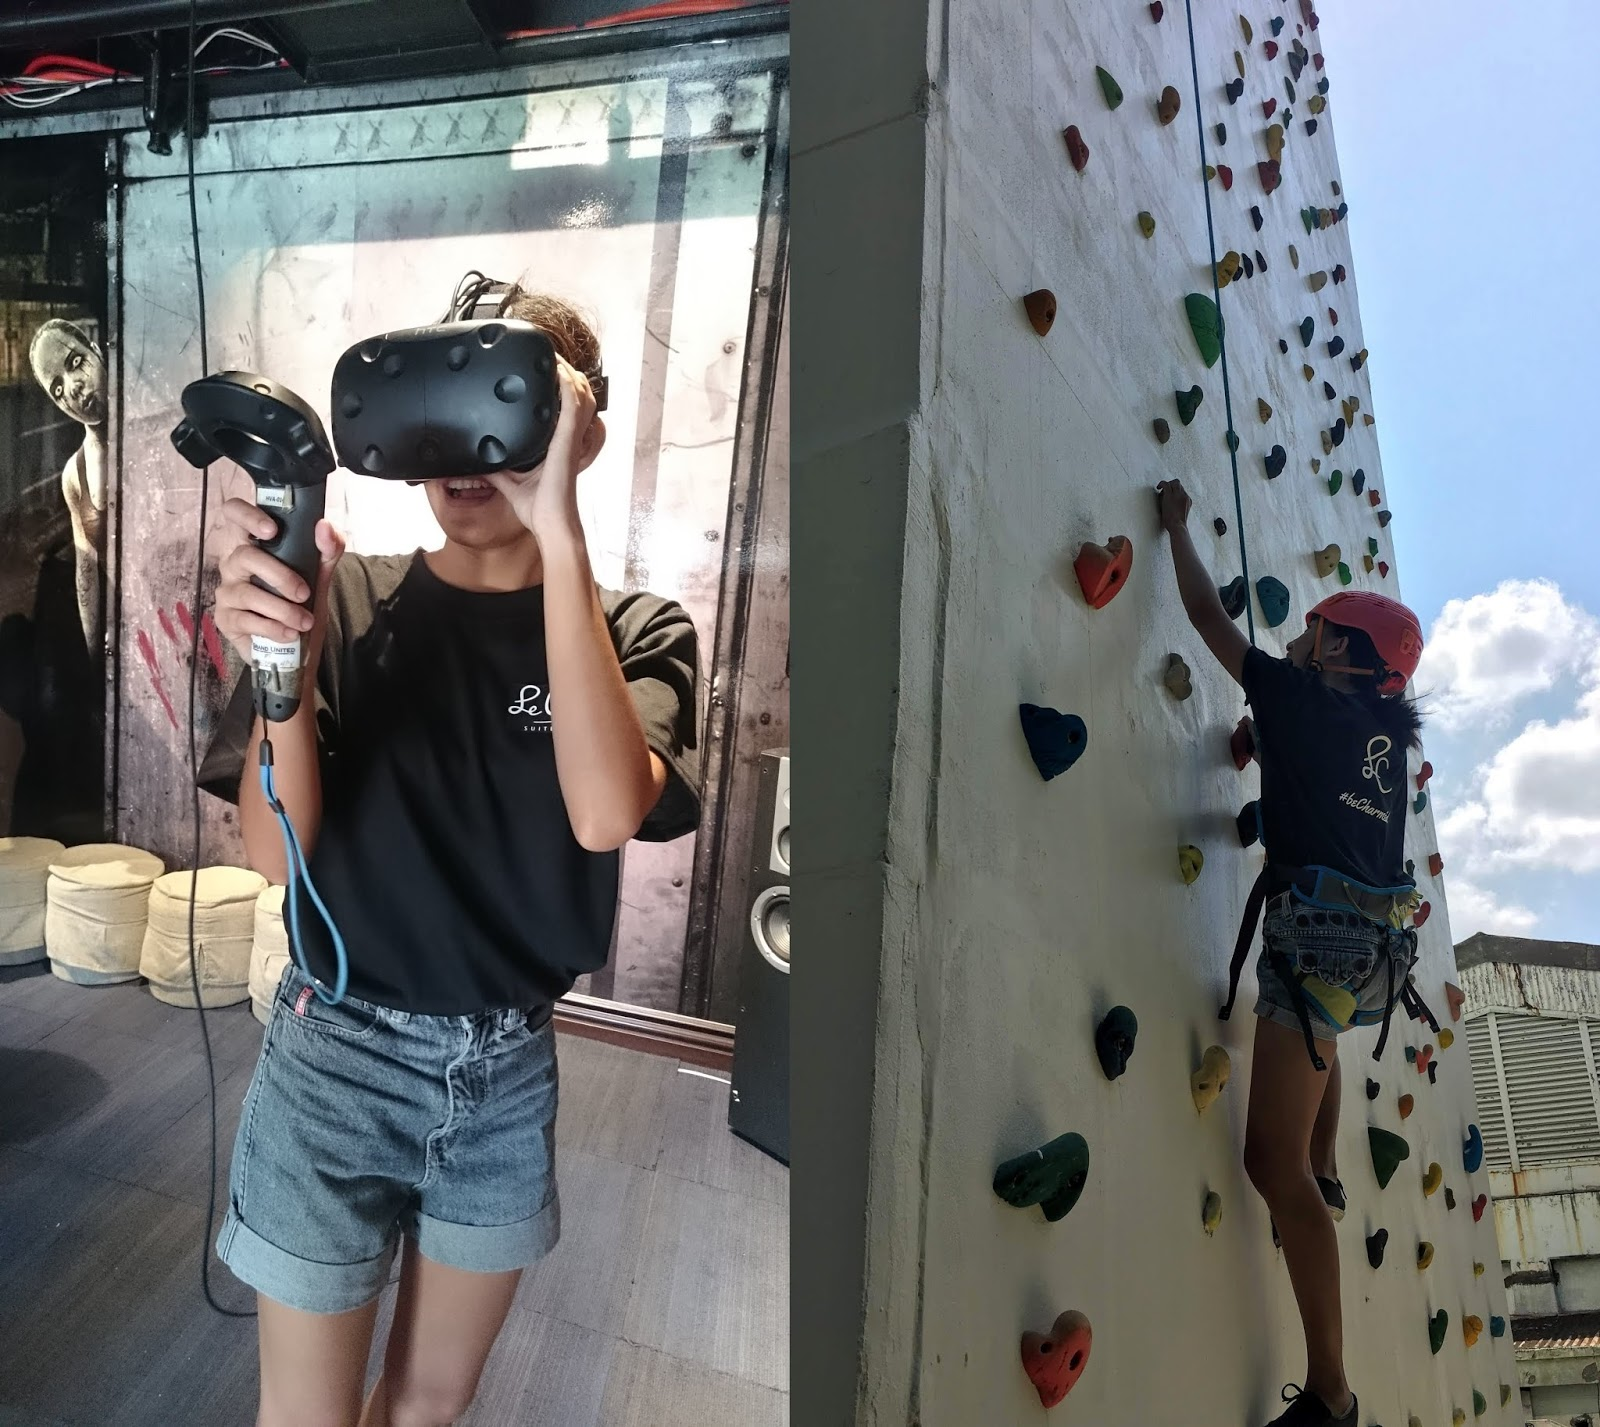 vr game in subic bay review